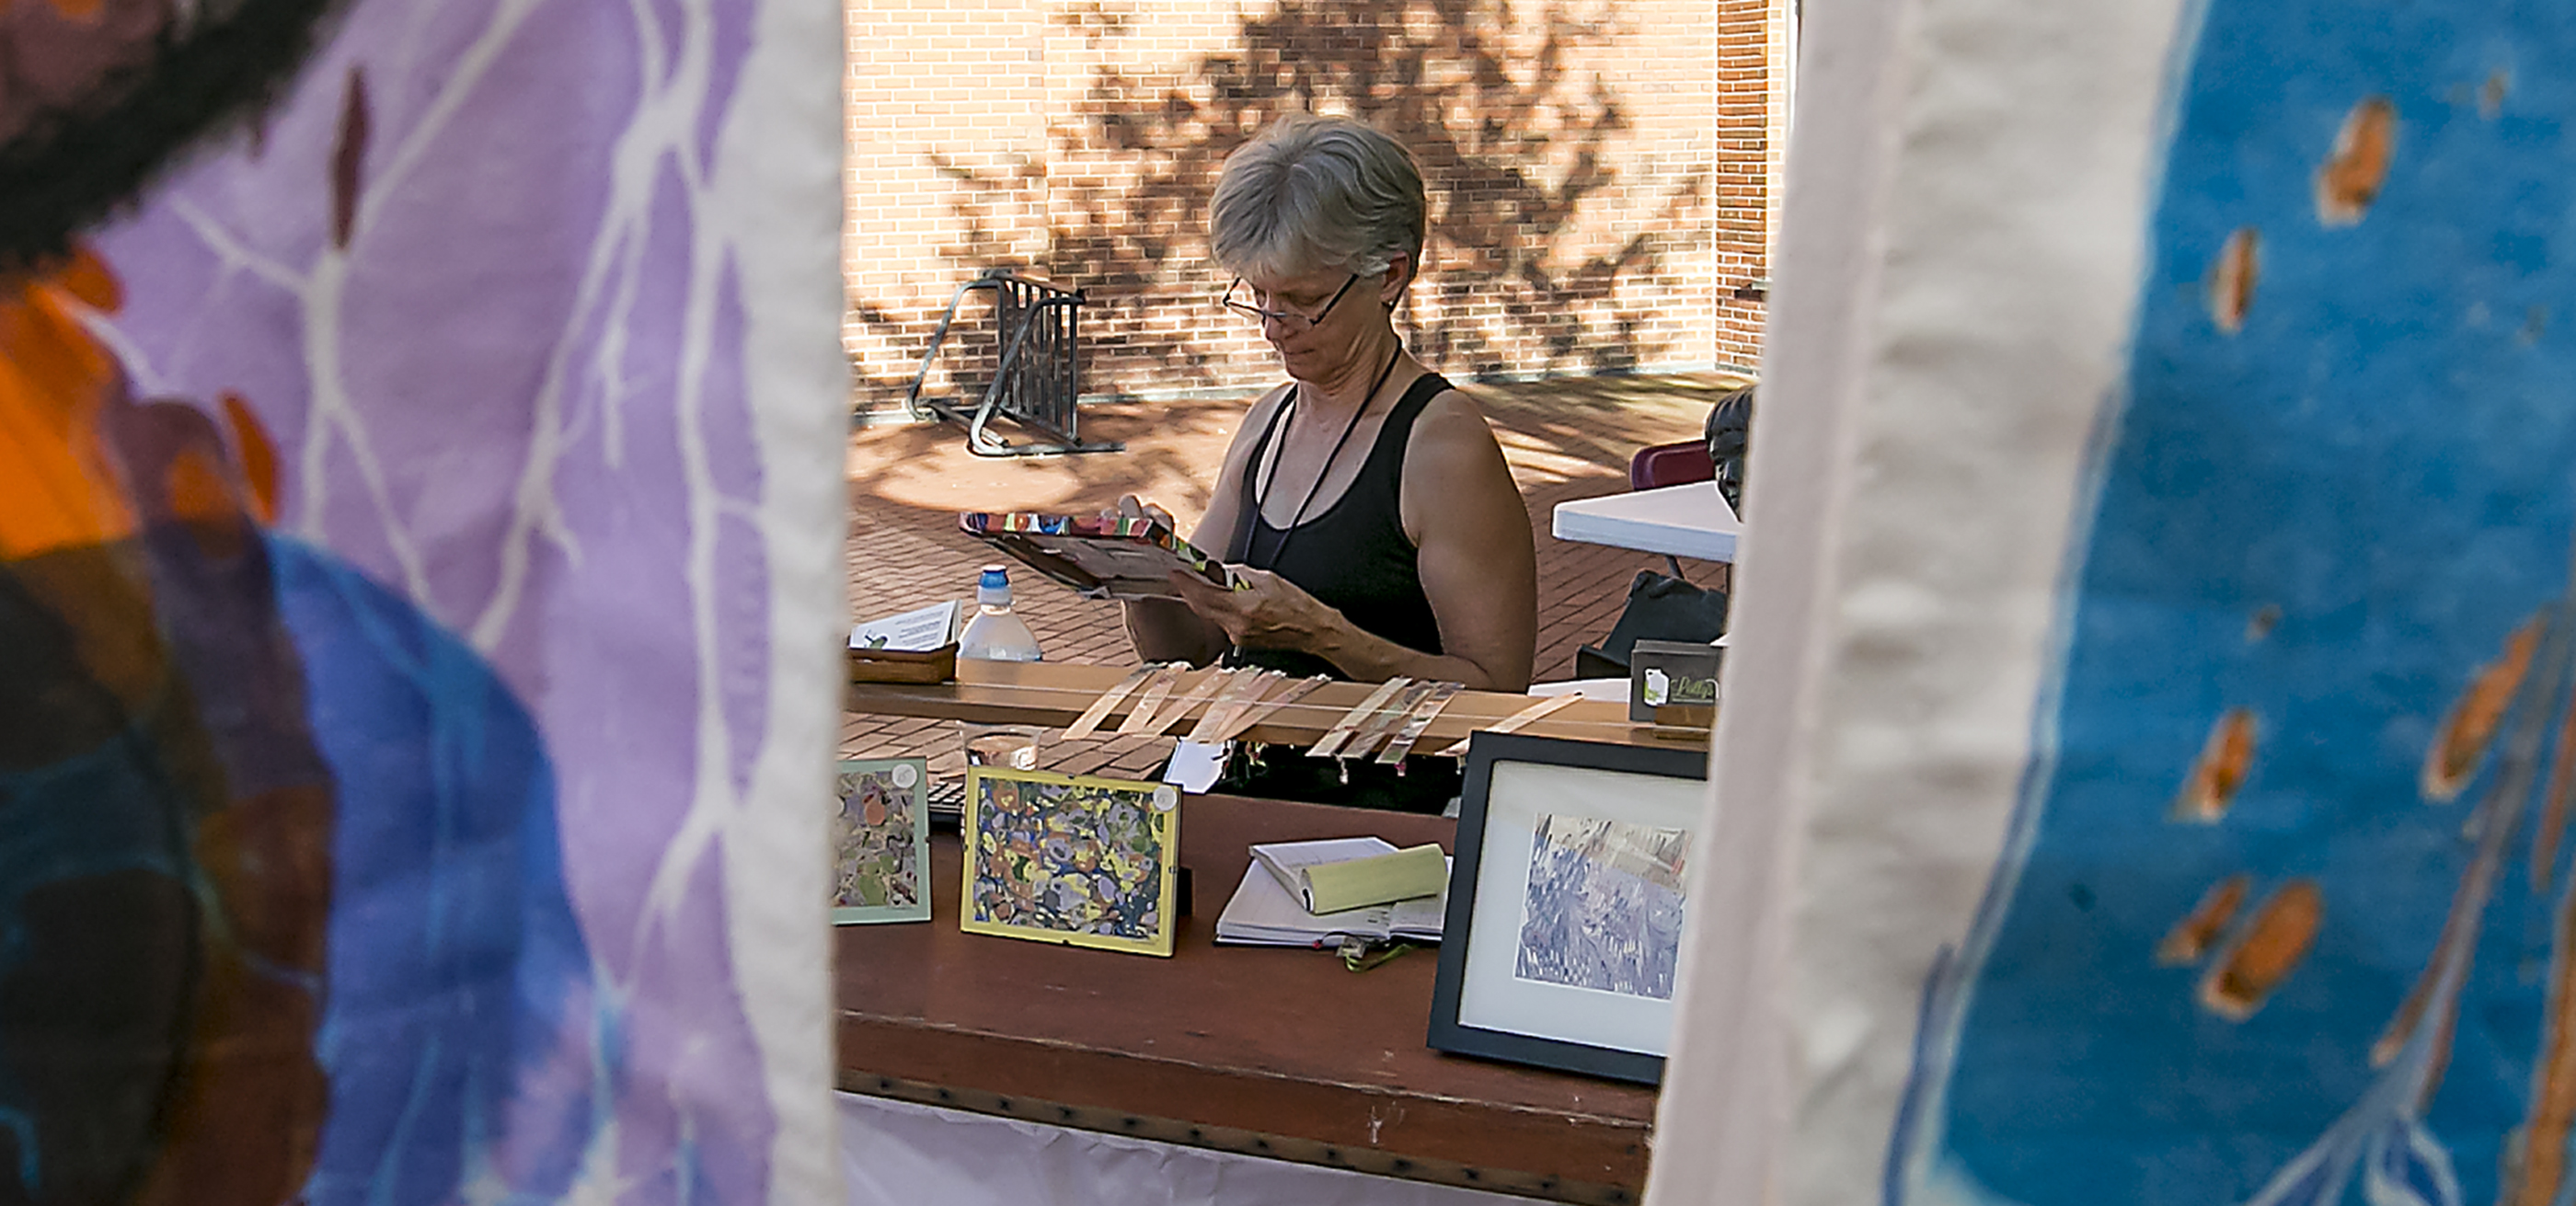 Photos from the Summer Arts Jam in Murfreesboro